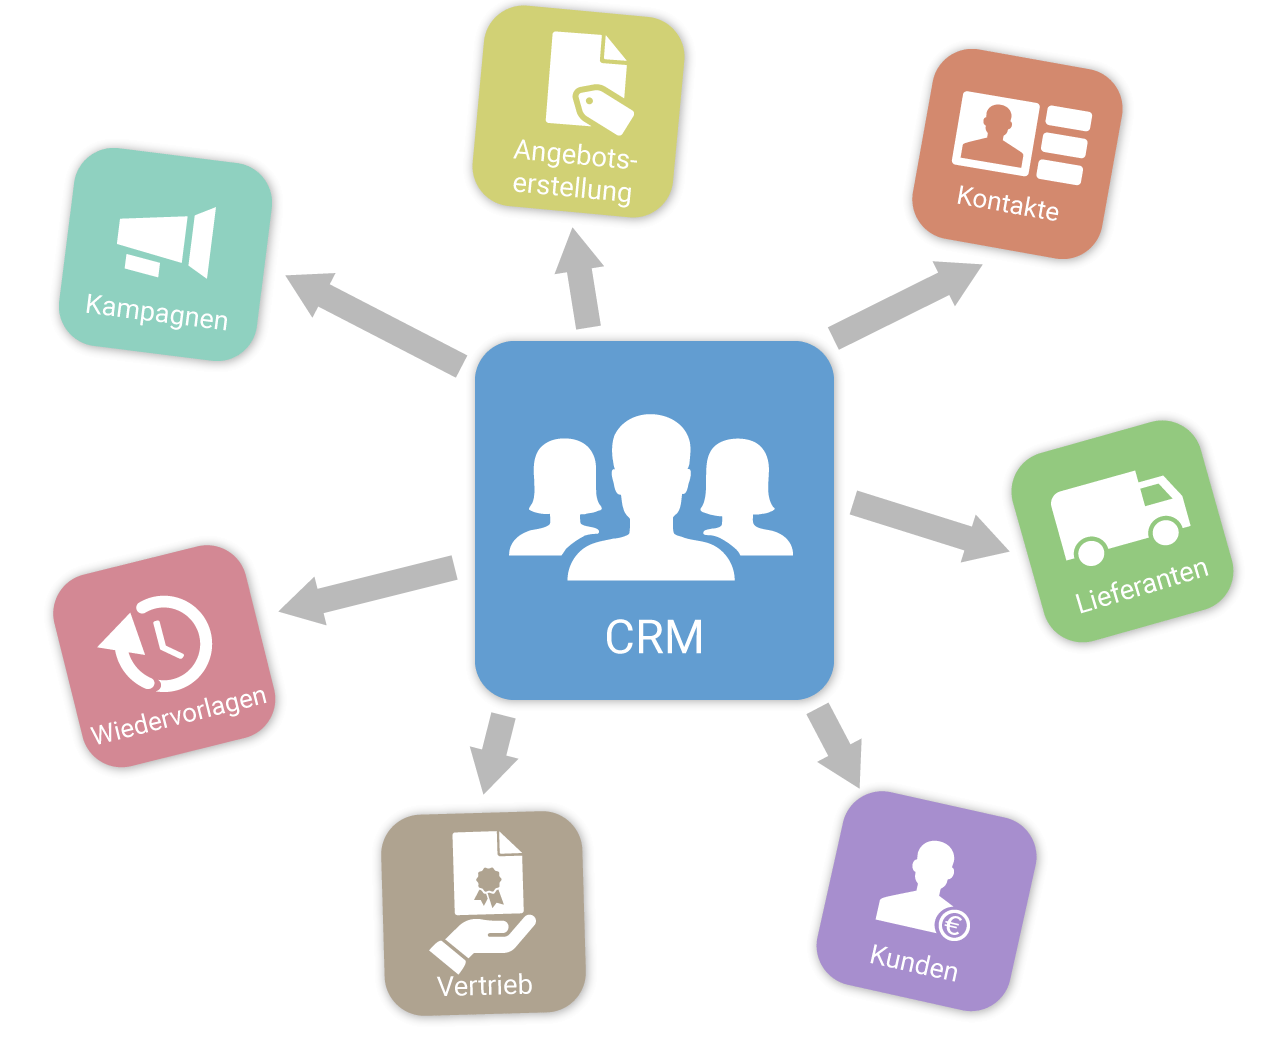 CRM in projectfacts